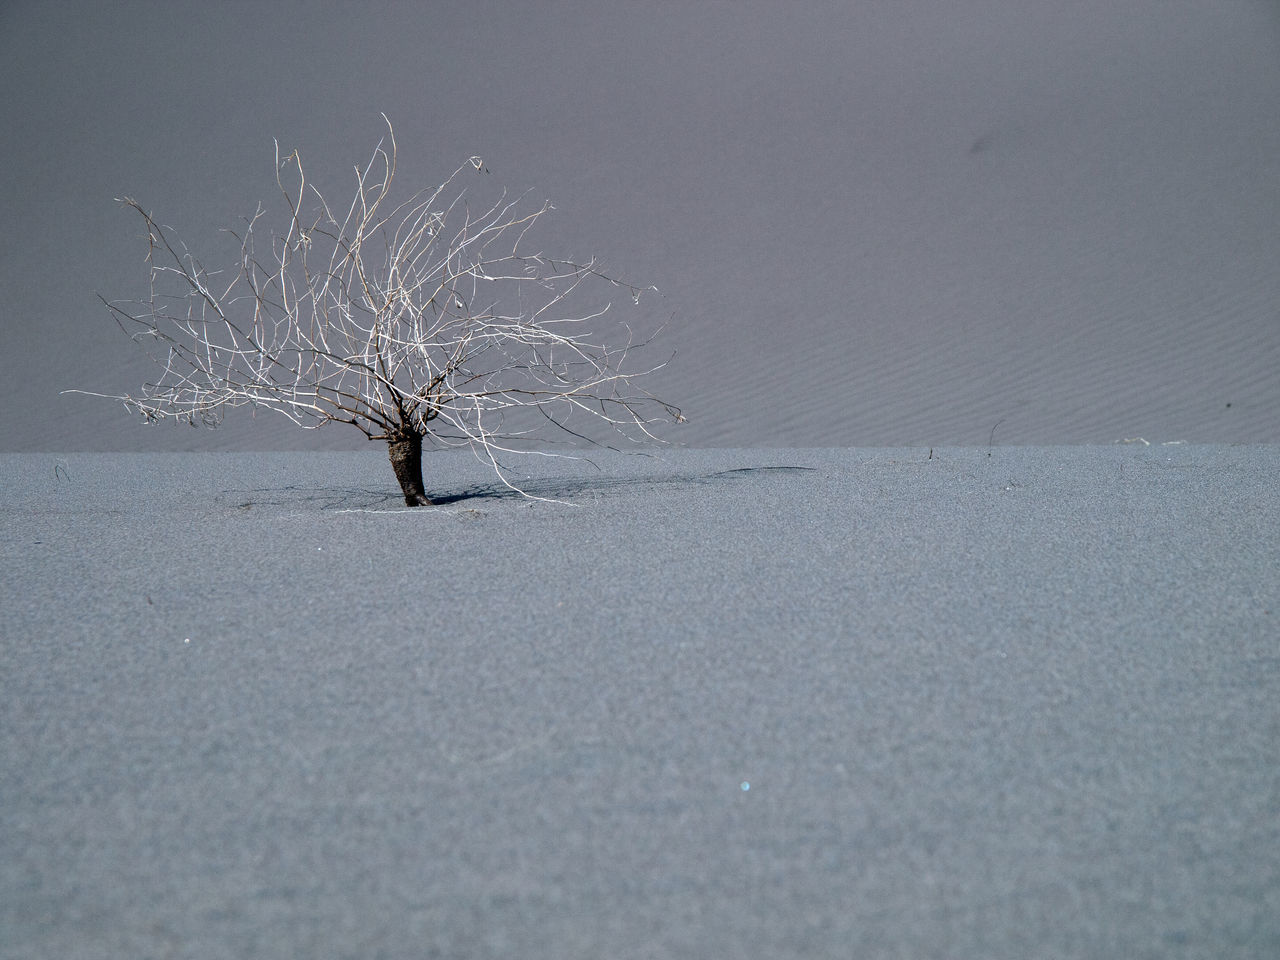 winter, bare tree, cold temperature, snow, nature, landscape, lone, tranquility, outdoors, day, beauty in nature, branch, no people, tree